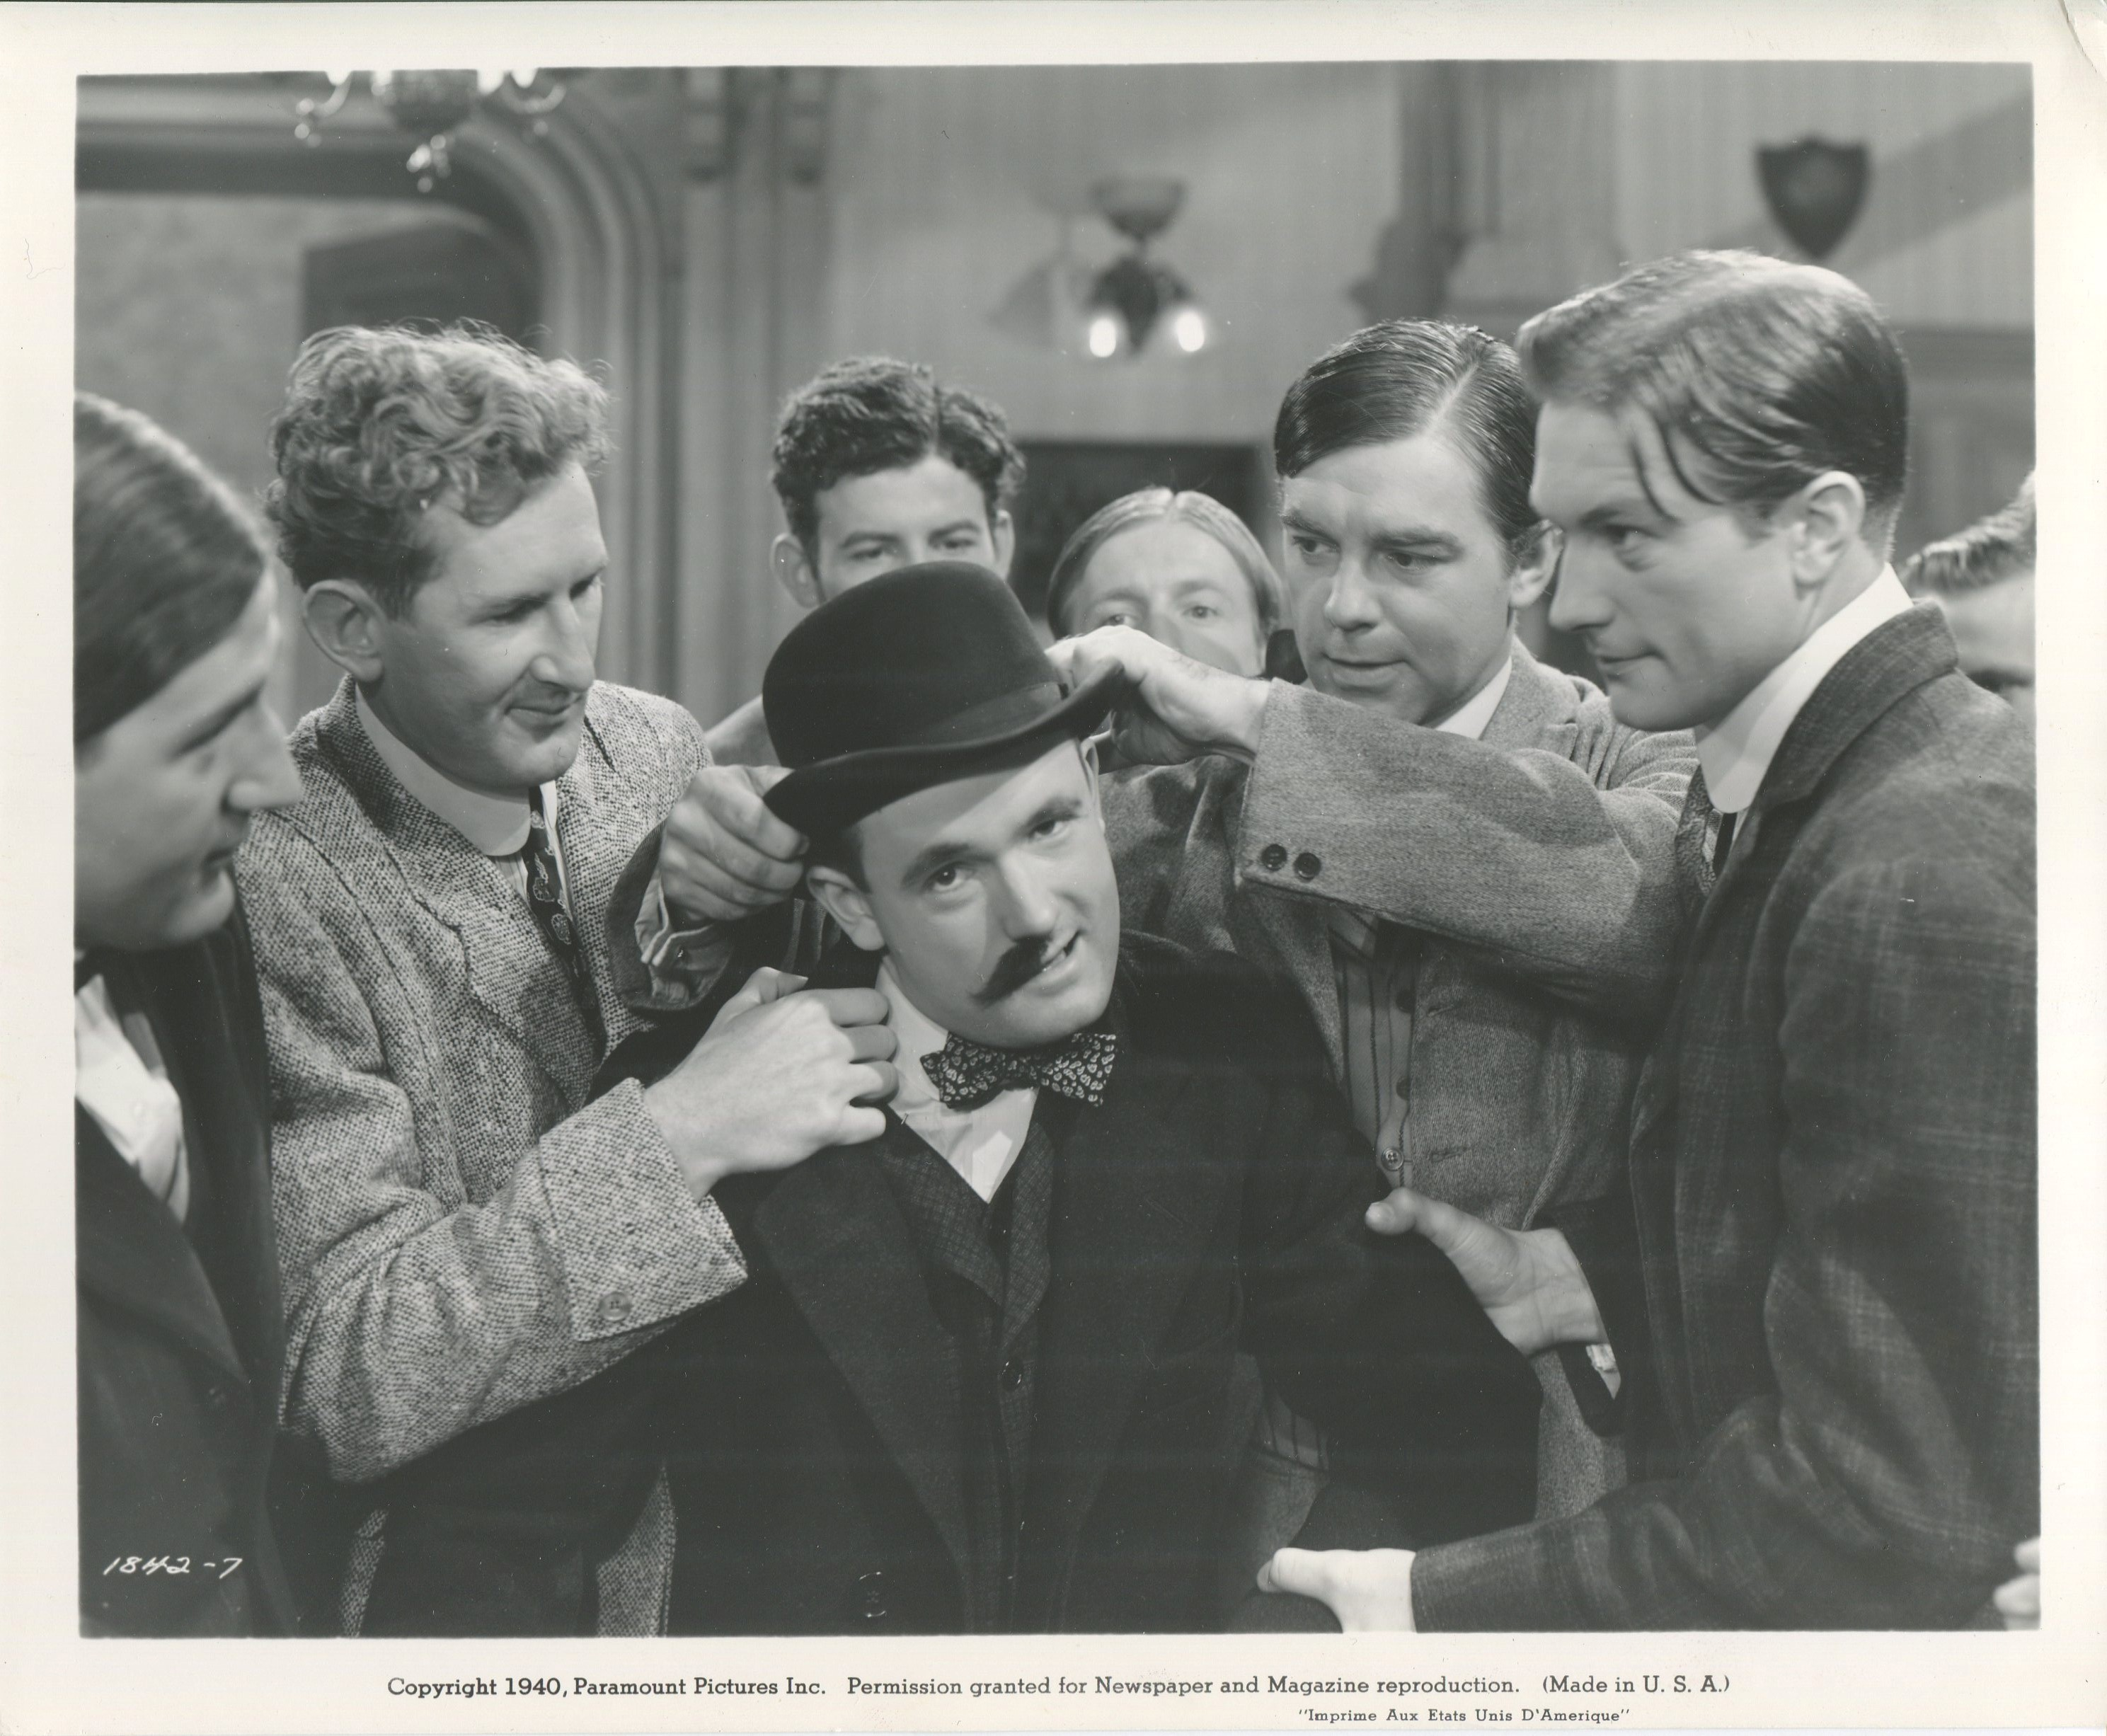 Richard Denning, Douglas Kennedy, John Laing, James Seay, Ezra Stone, and Phillip Terry in Those Were the Days! (1940)